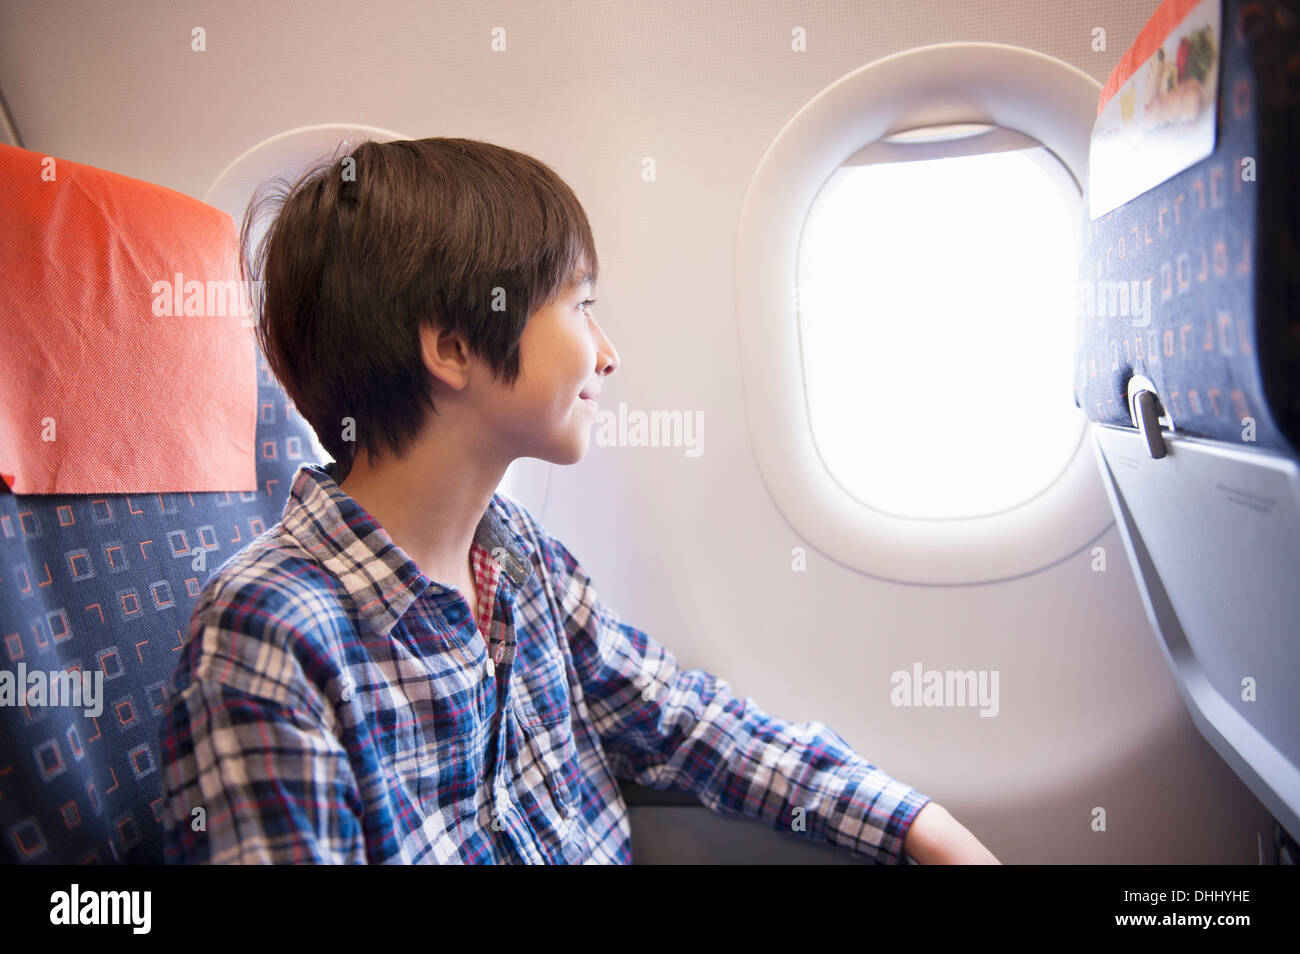 Boy looking out of window on aeroplane Stock Photo